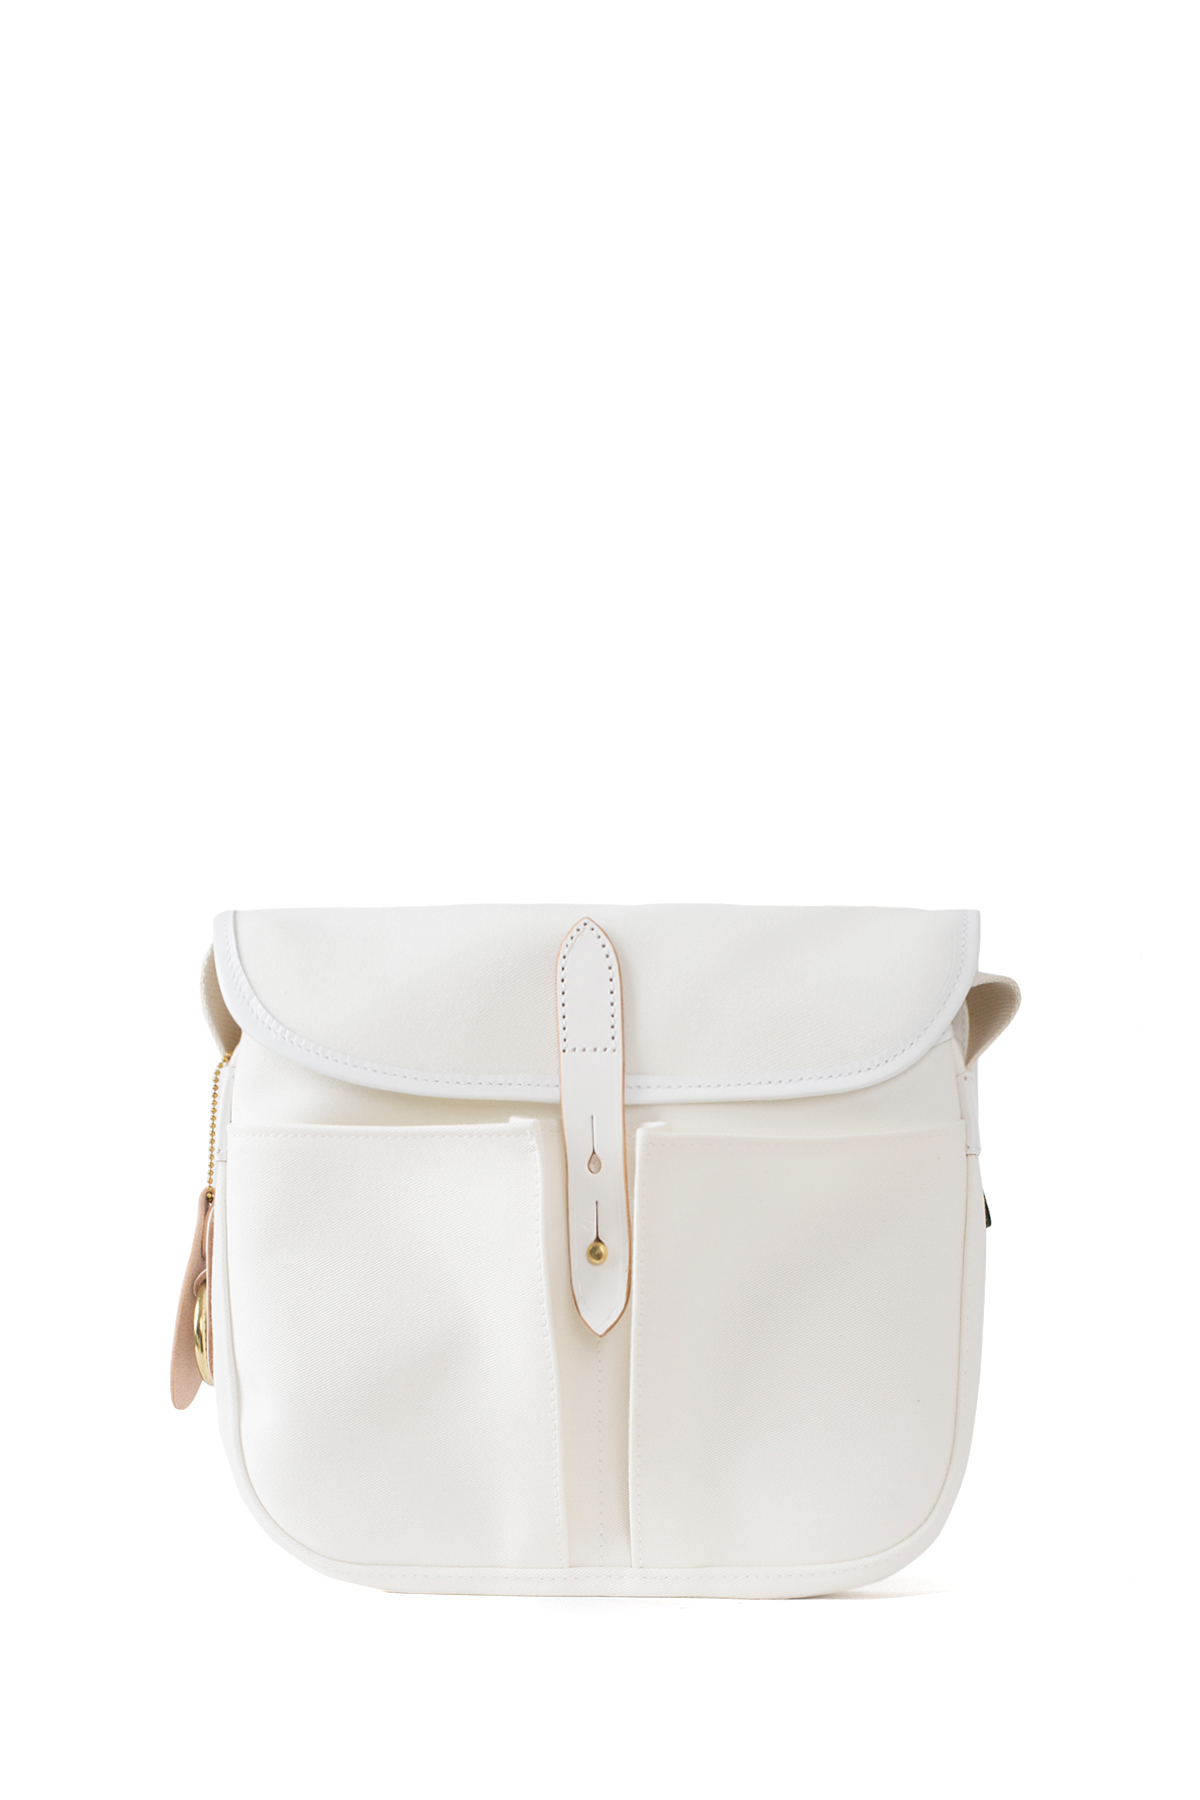 Brady Bags : STOUR Fishing Bag (White)